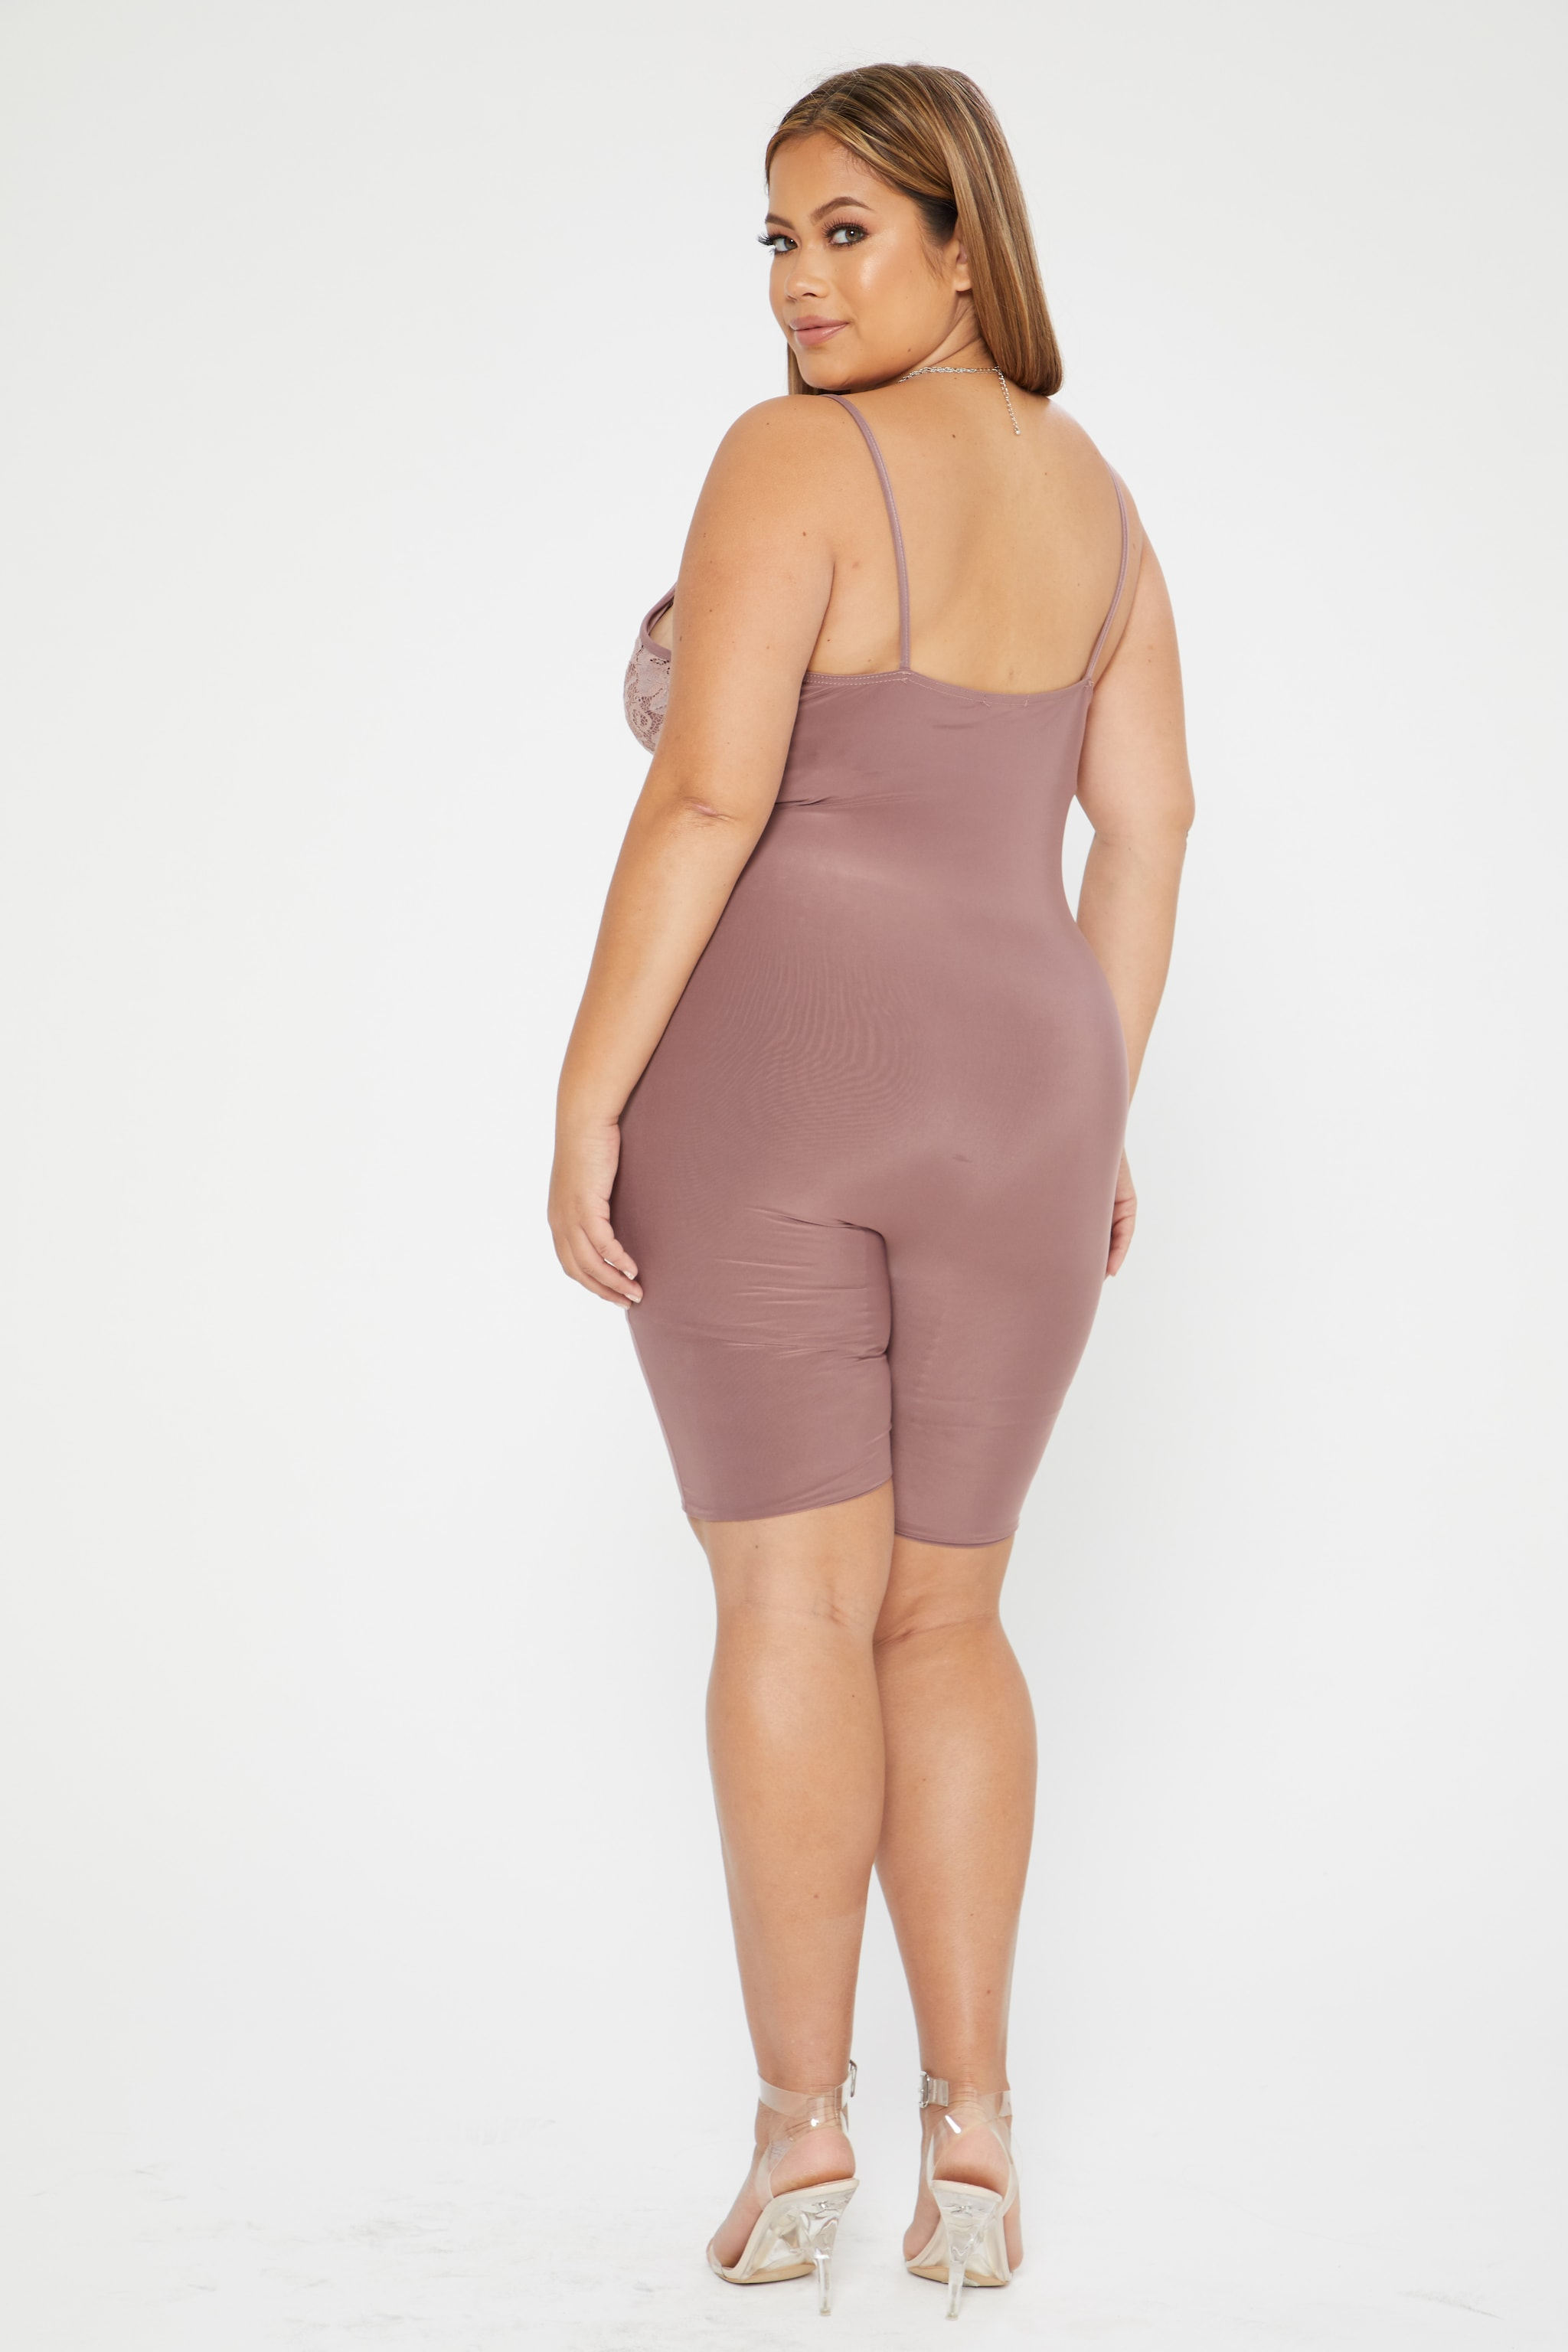 Plus Mauve Second Skin  Lace Trim Unitard 2